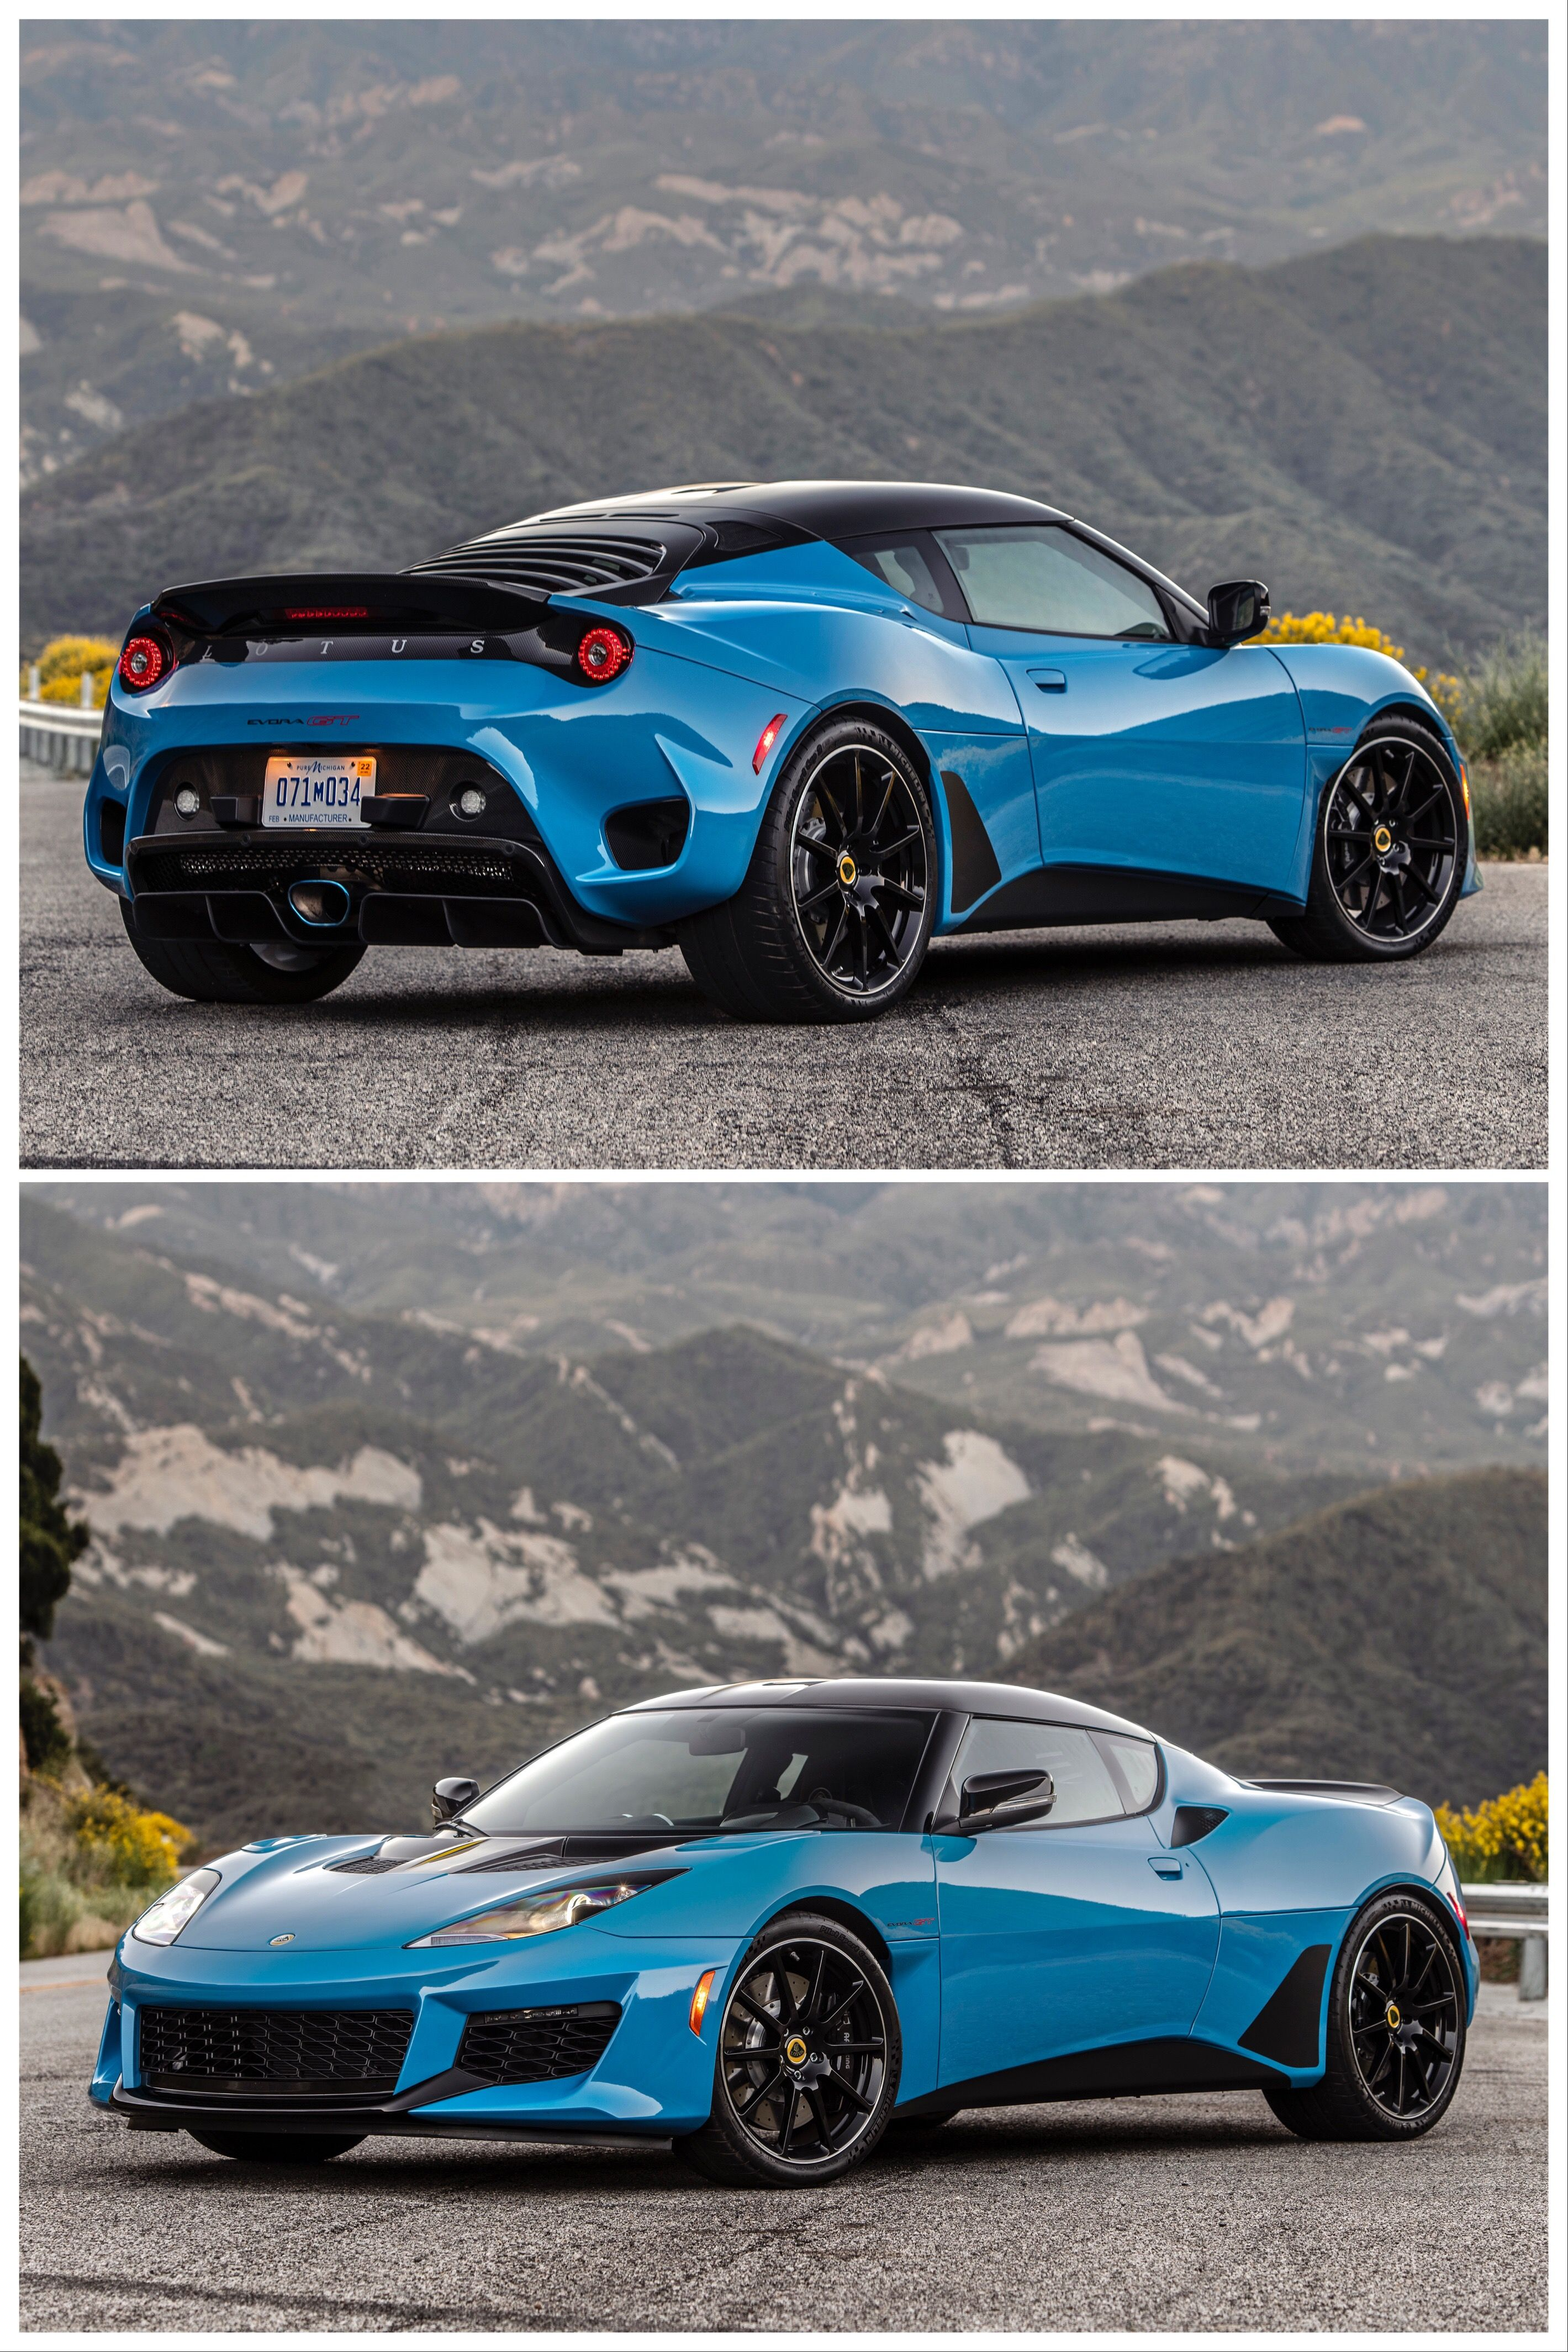 The 2020 Lotus Evora Gt Is Here To Thrill With 416 Hp Evora Sportscar Super Cars